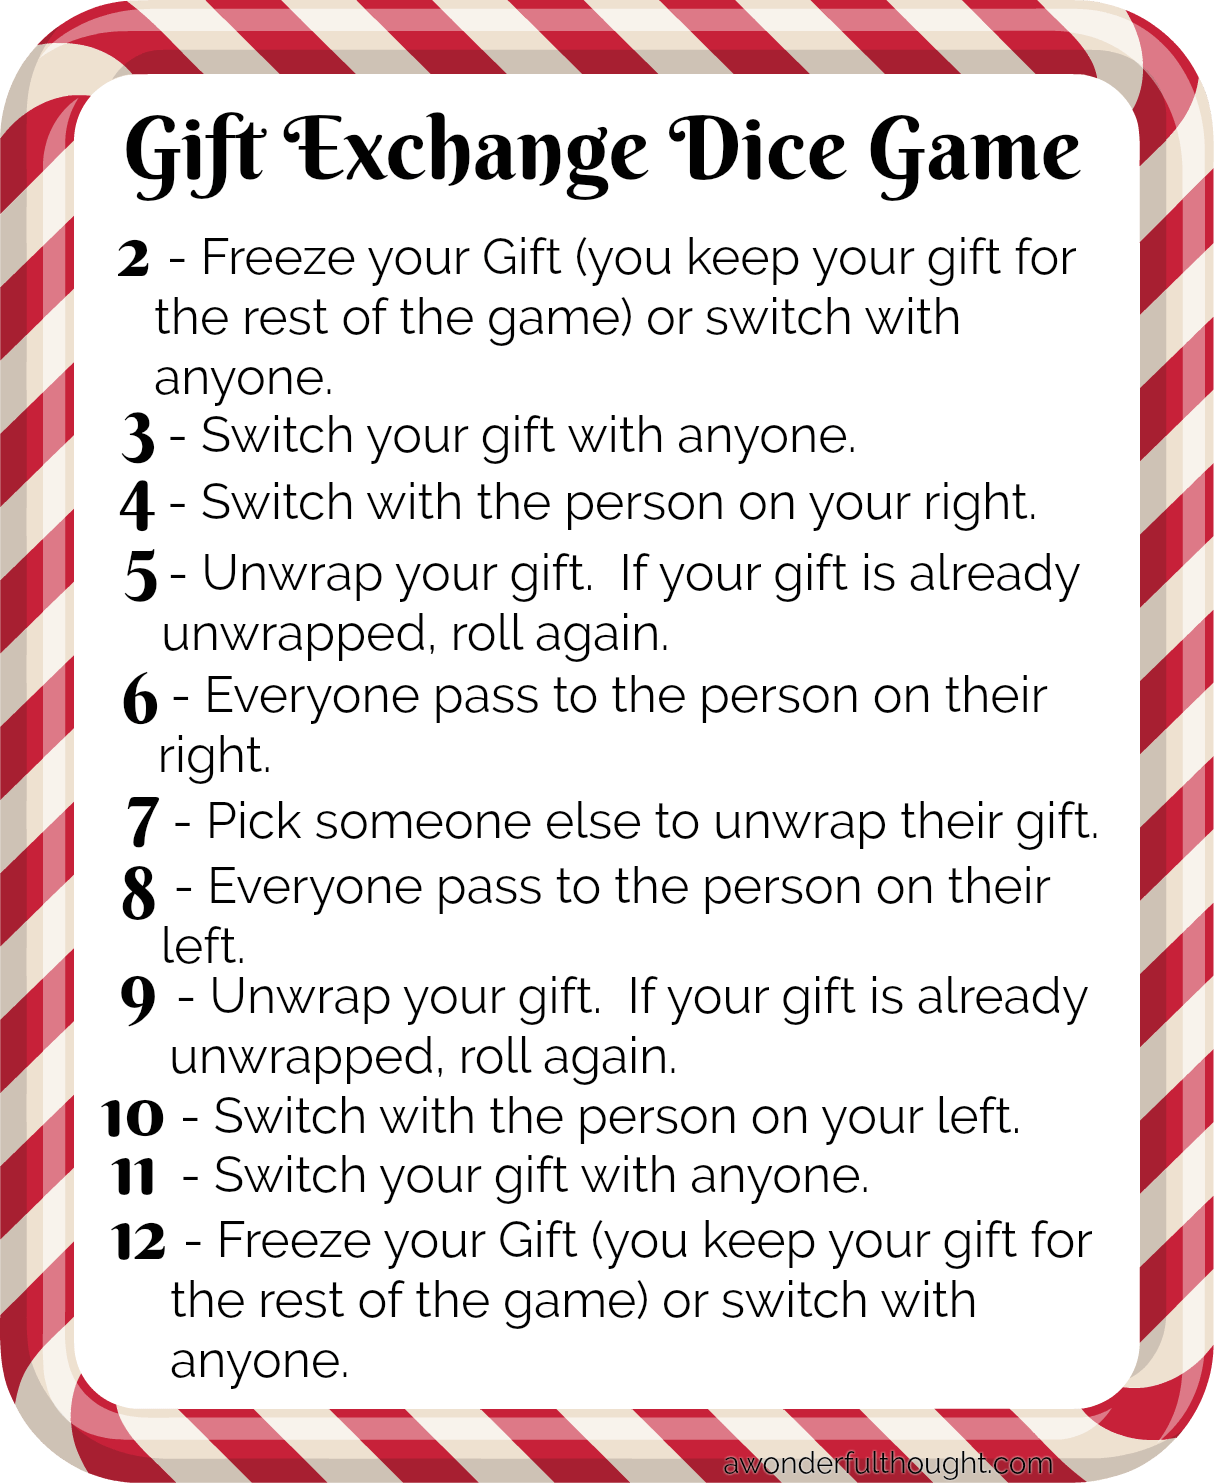 10 Fun Christmas Gift Exchange Ideas in lieu of White Elephant #partygames #giftexchange #Christmasgiftexchange #awonderfulthought